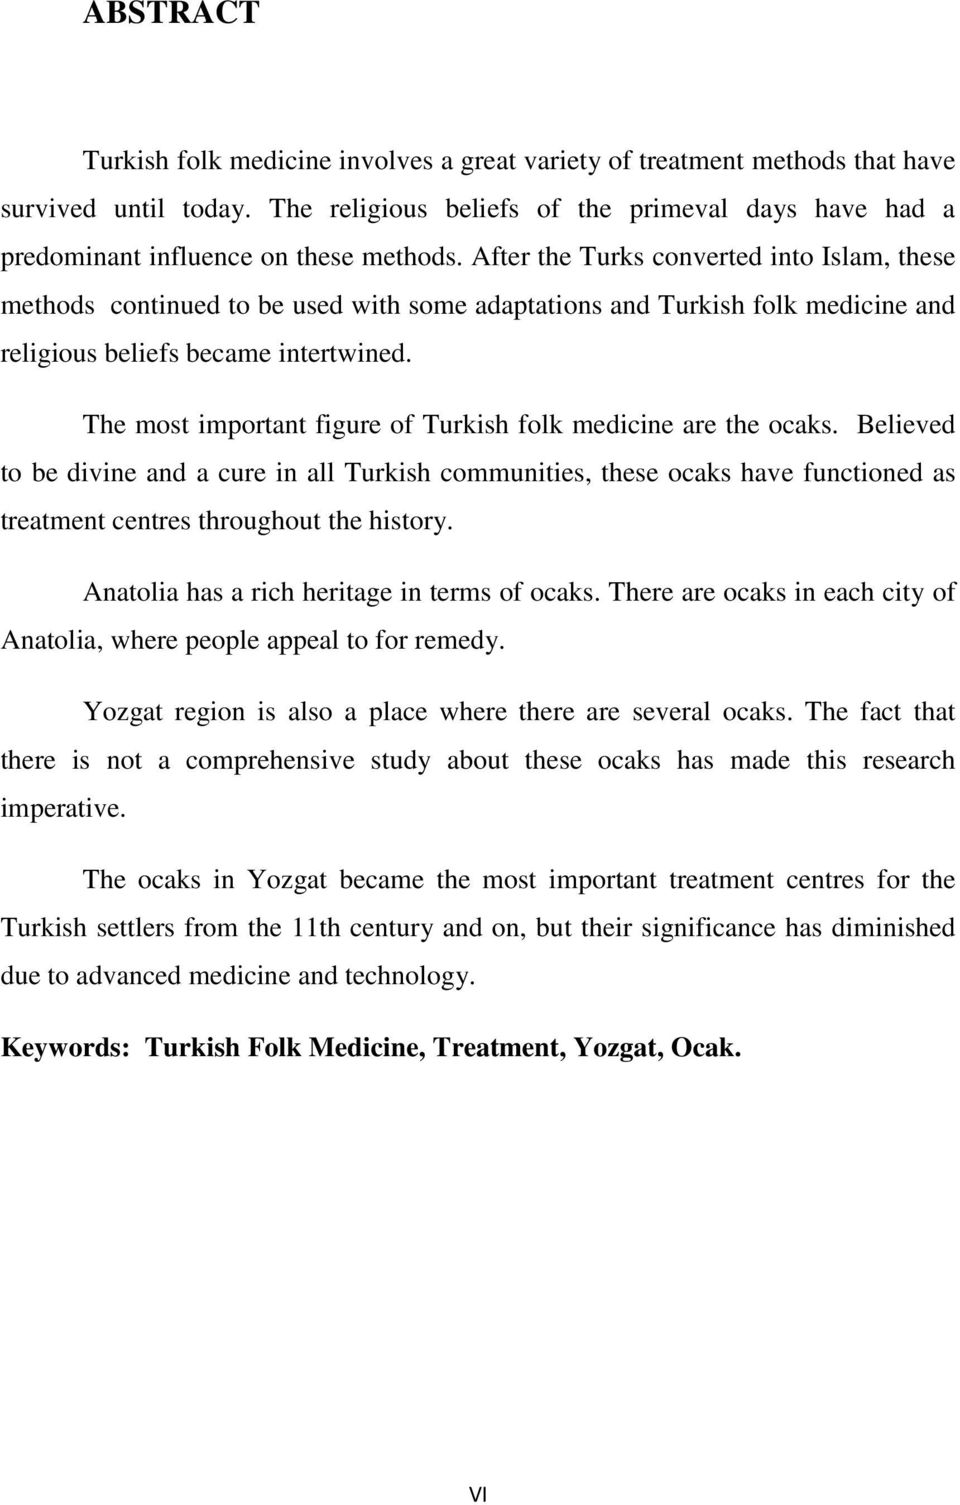 After the Turks converted into Islam, these methods continued to be used with some adaptations and Turkish folk medicine and religious beliefs became intertwined.